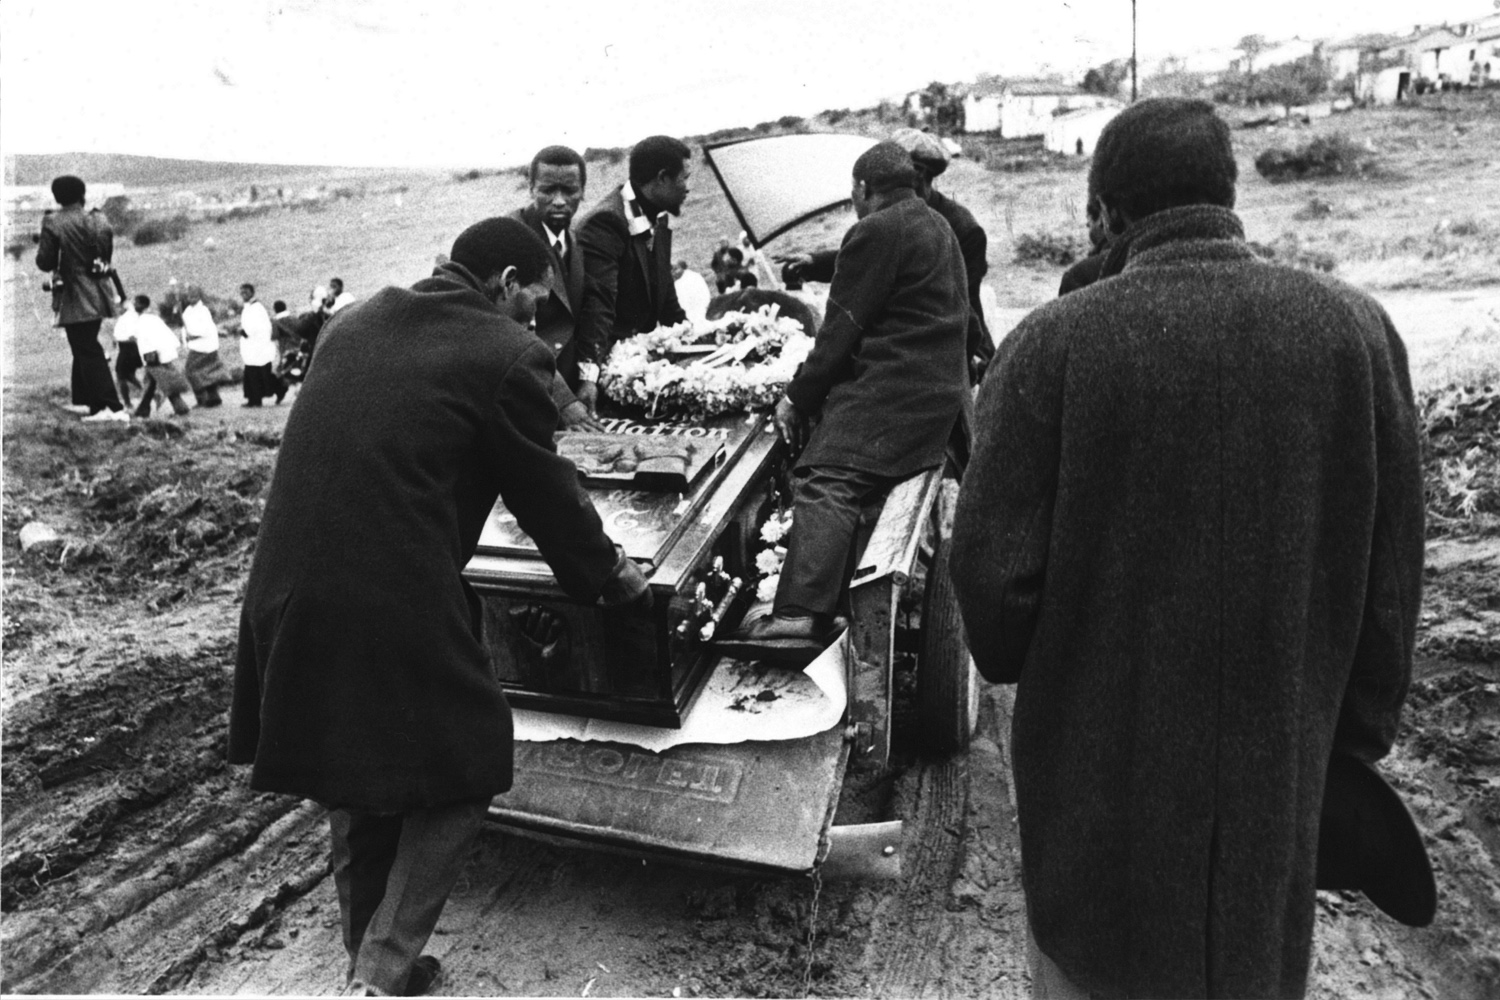 The coffin was carried to the cemetery in an ox-cart, followed by thousands of mourners. 1977.